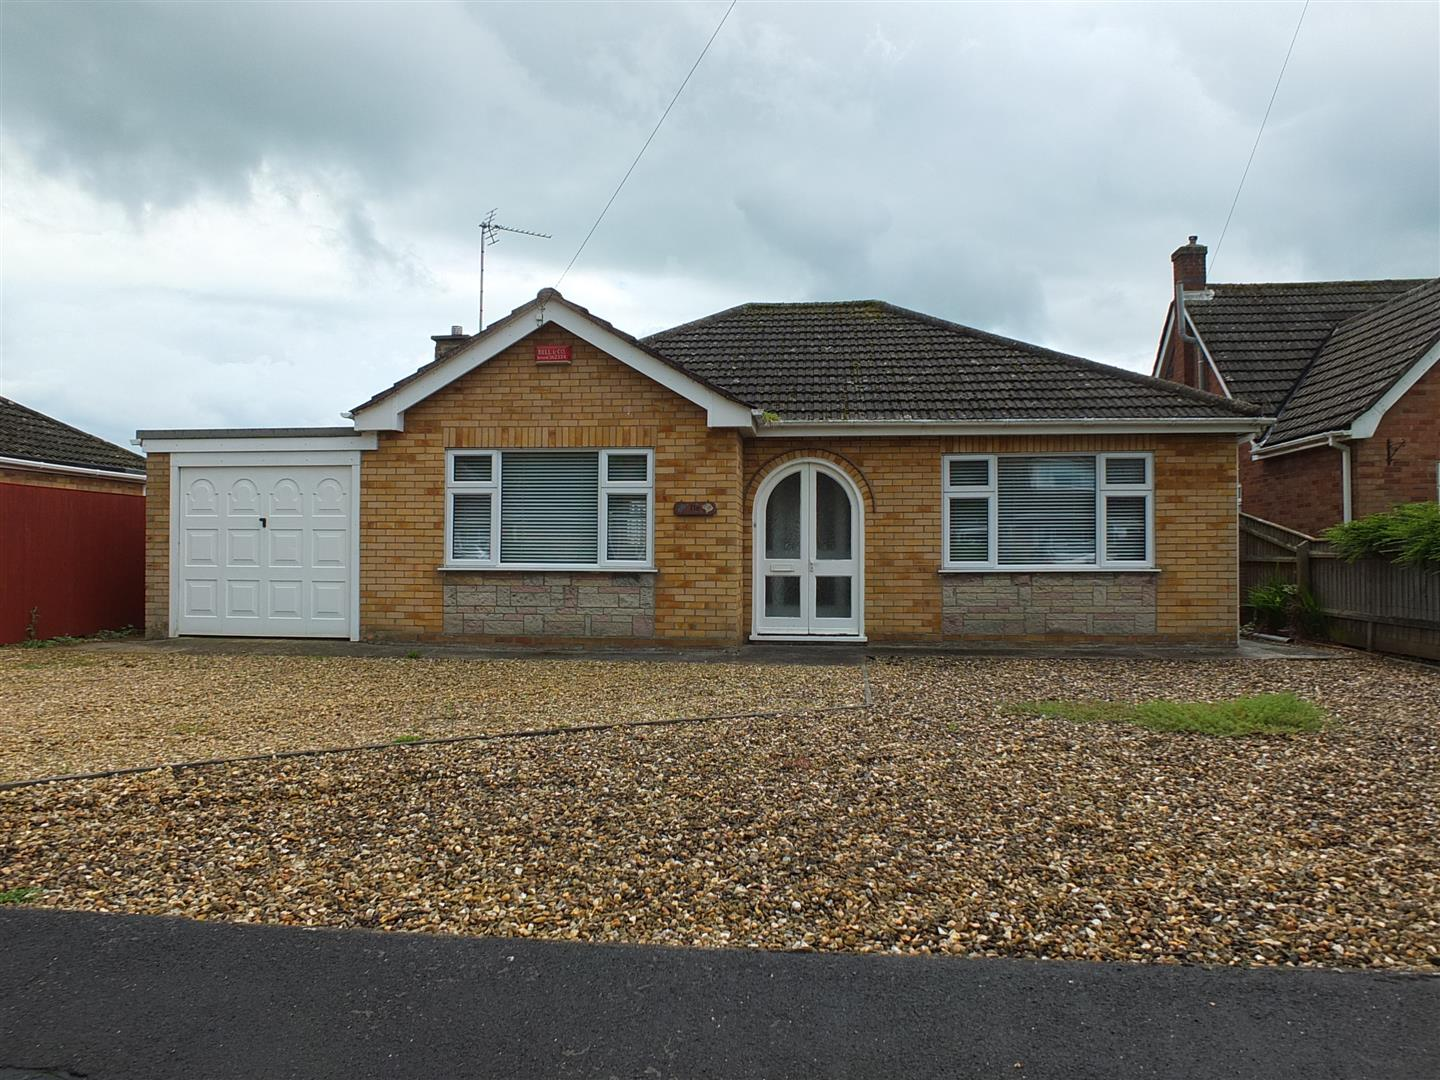 2 bed detached bungalow to rent in Long Sutton Spalding, PE12 9BZ  - Property Image 1